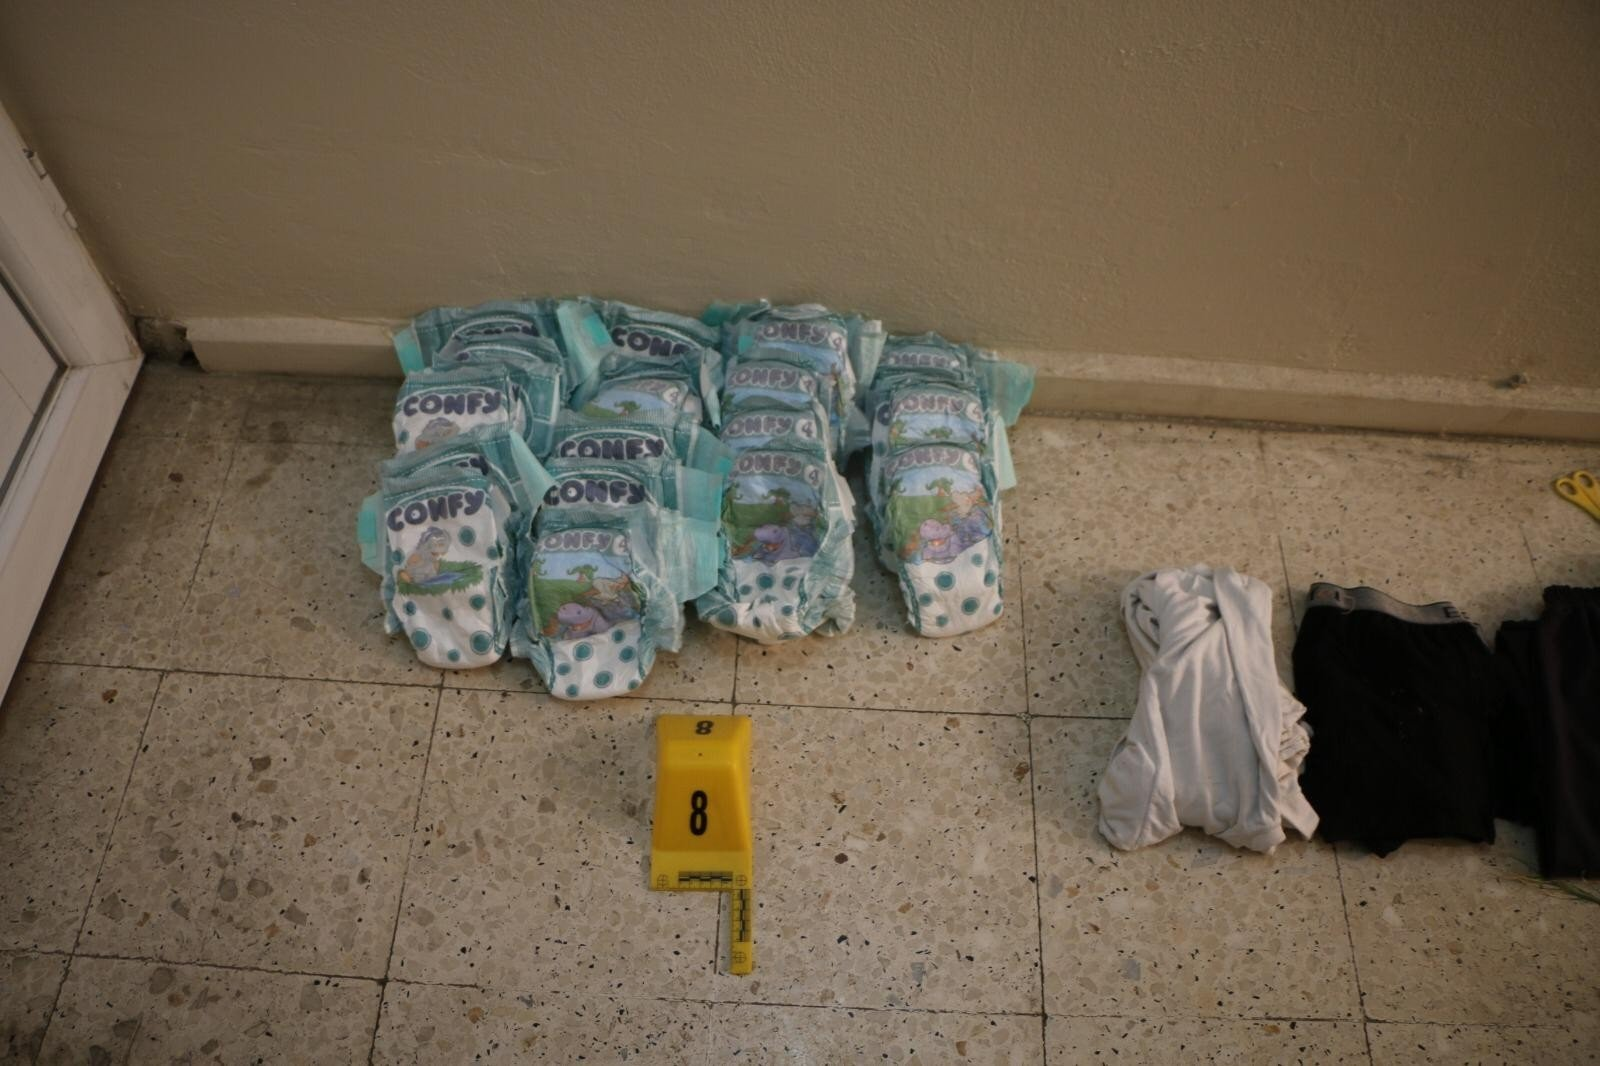 Bombs were discovered hidden inside a pack of baby diapers brought into Turkey by PKK terrorists through the Syrian border